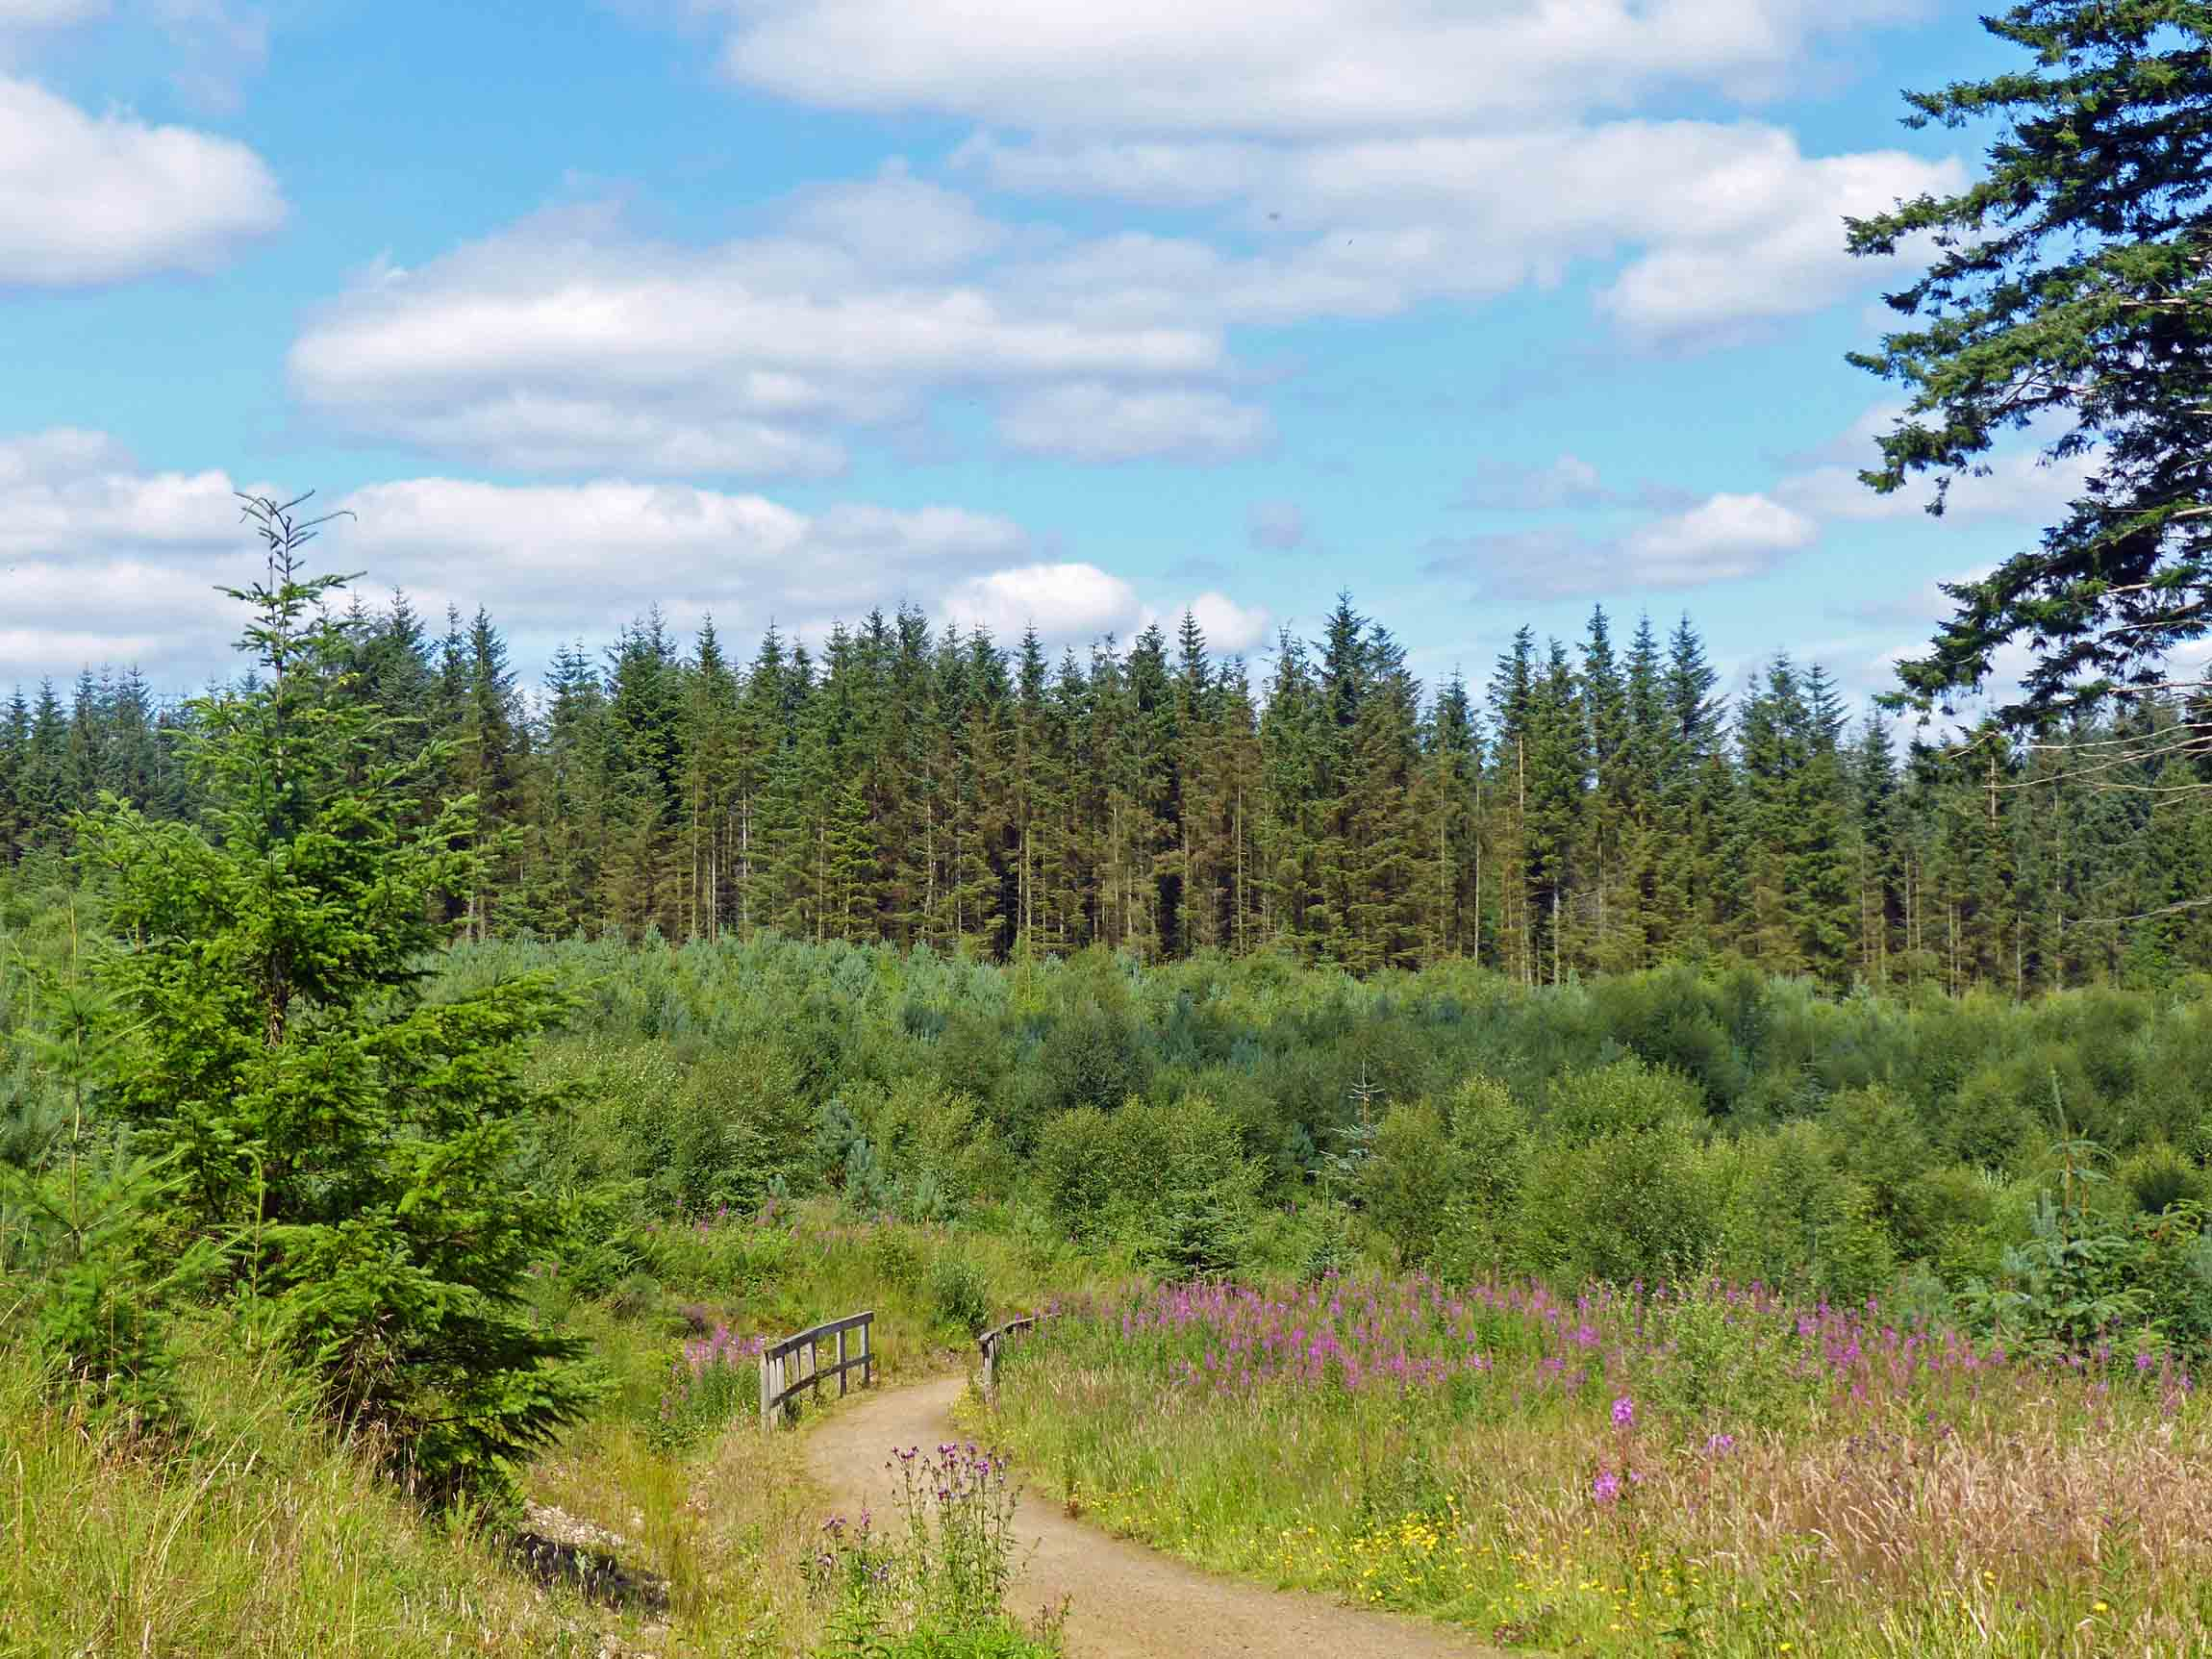 Path through open meadow and pine trees